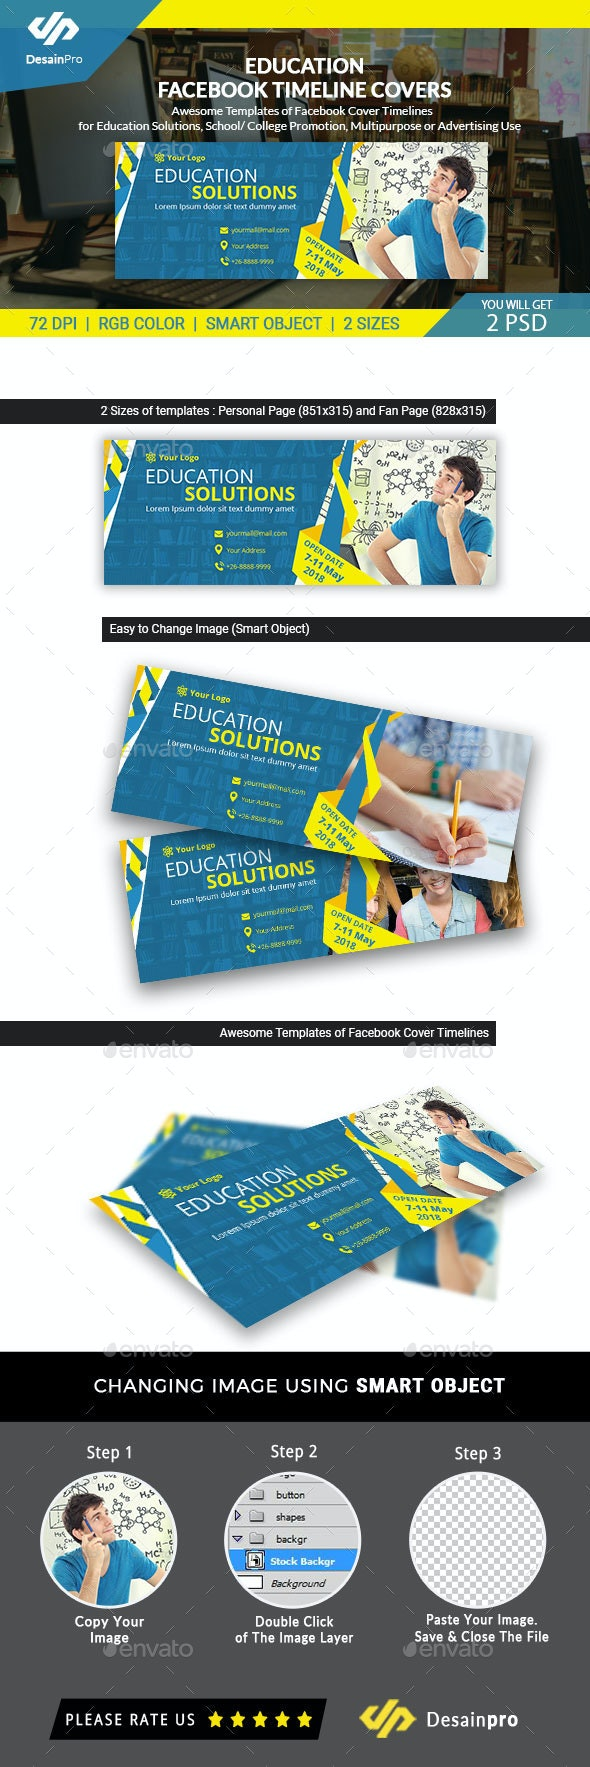 Education Solutions Facebook Timeline Covers - AR - Facebook Timeline Covers Social Media